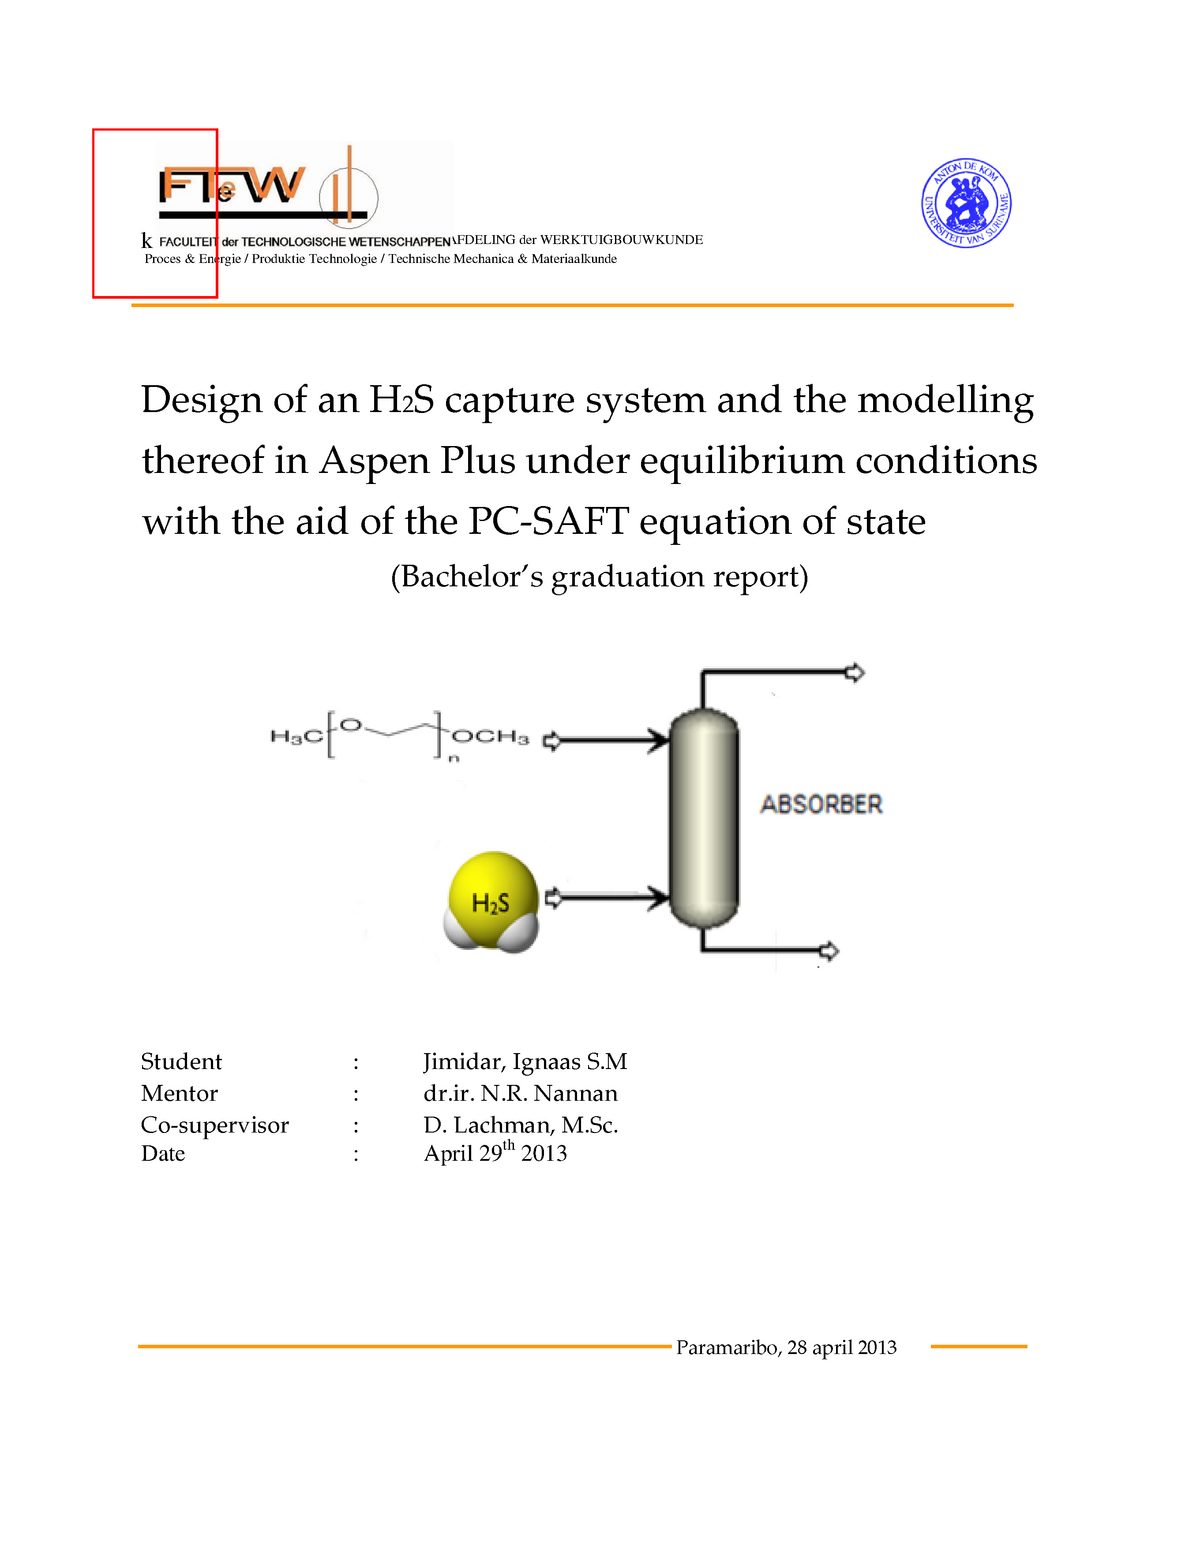 Design of an H2S capture system and the modeling thereof in Aspen